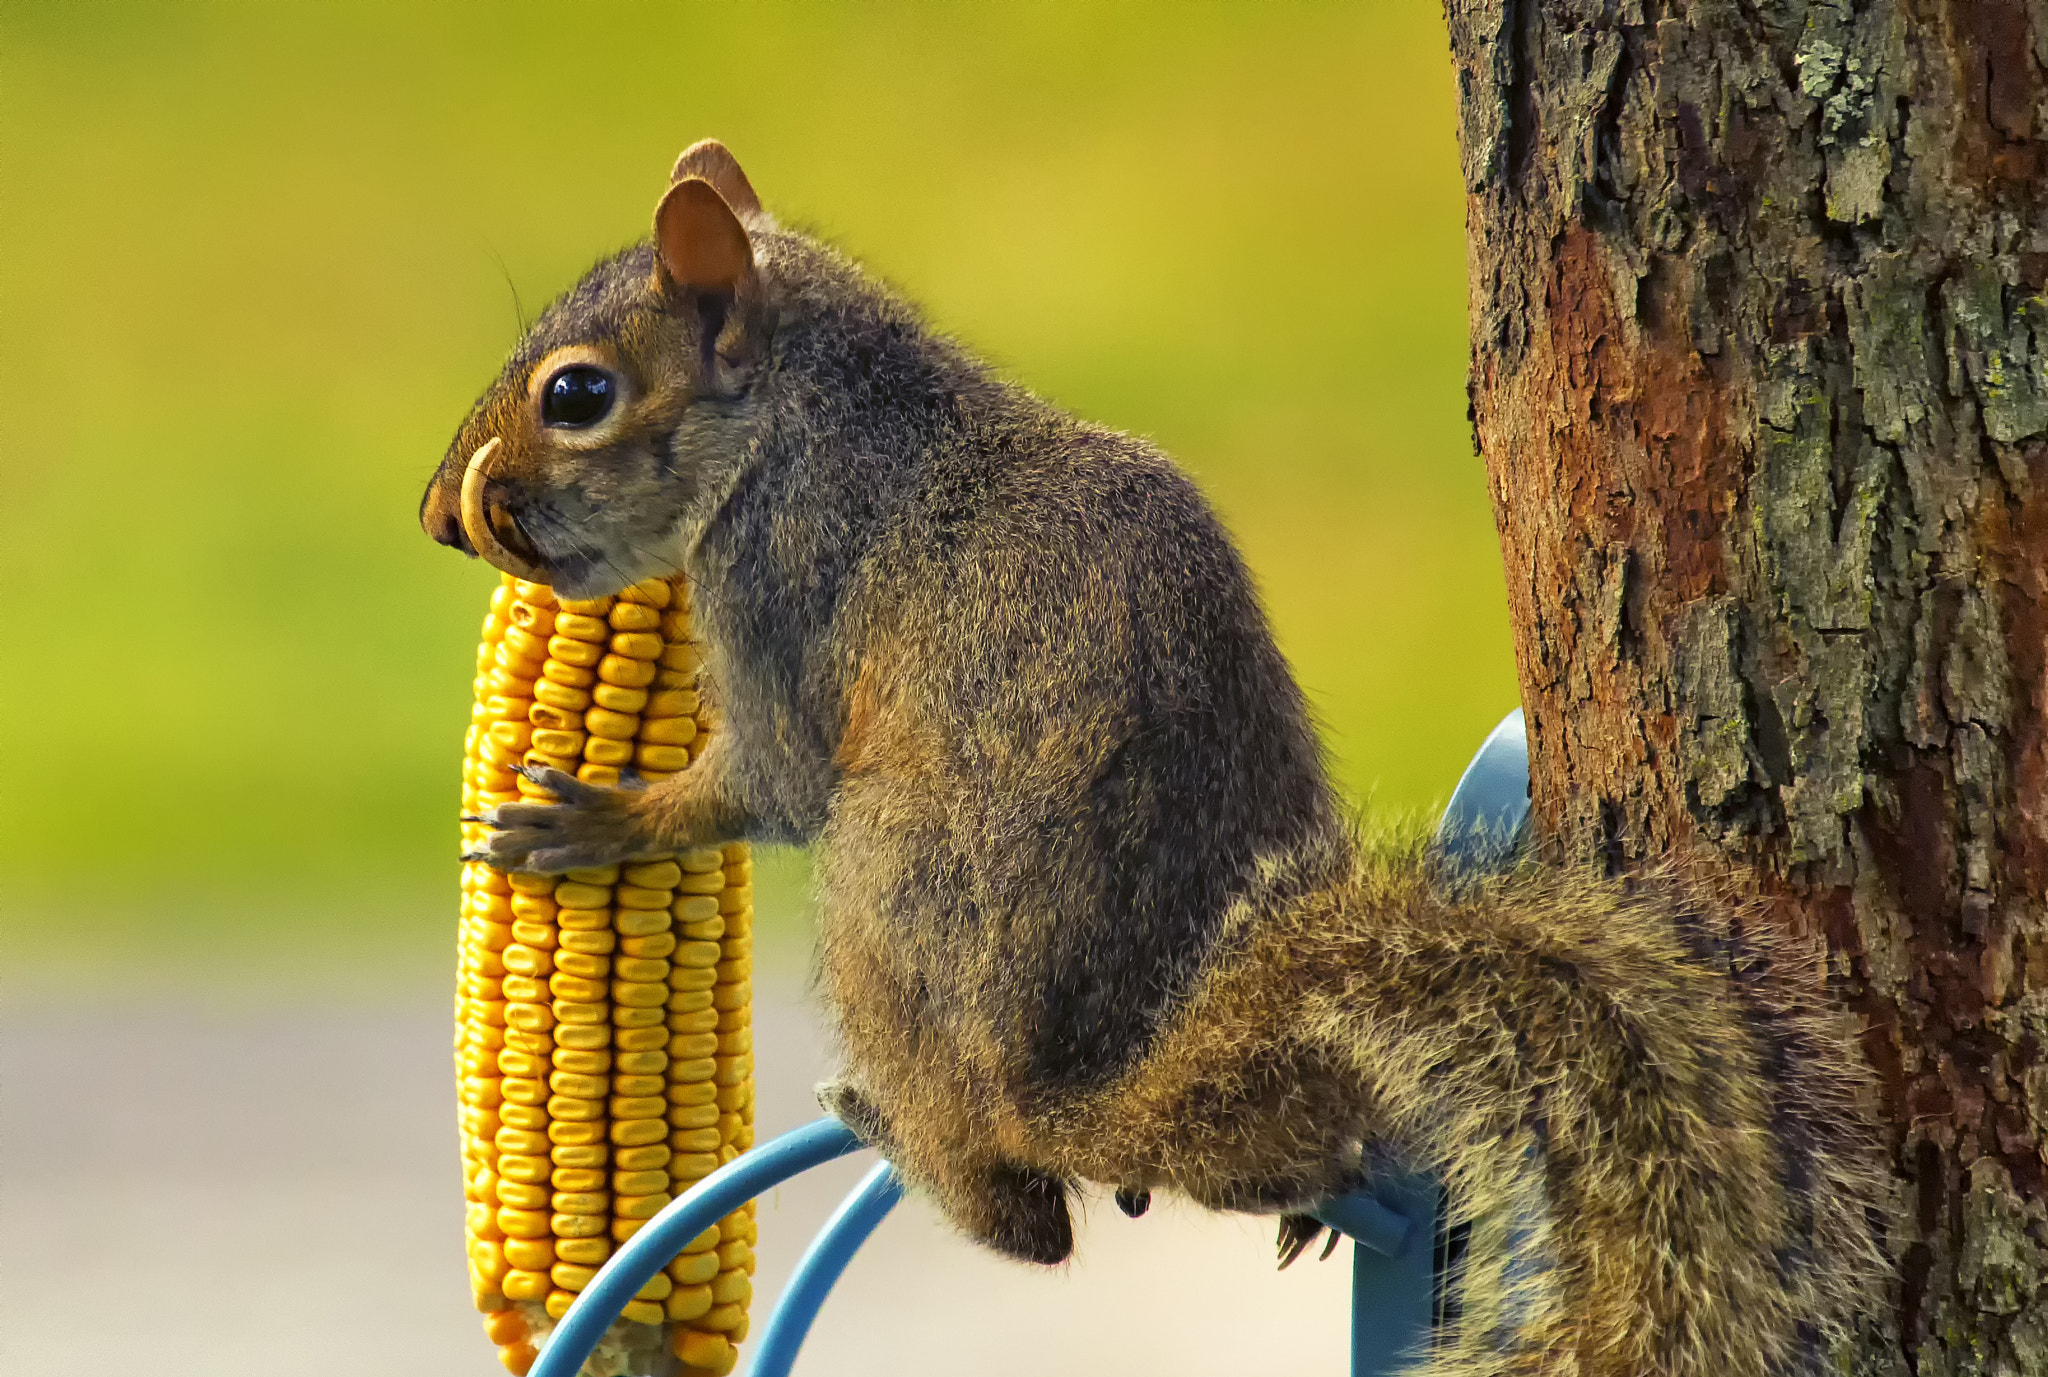 Photograph Snaggletooth Squirrel with Corn by Bill Tiepelman on 500px